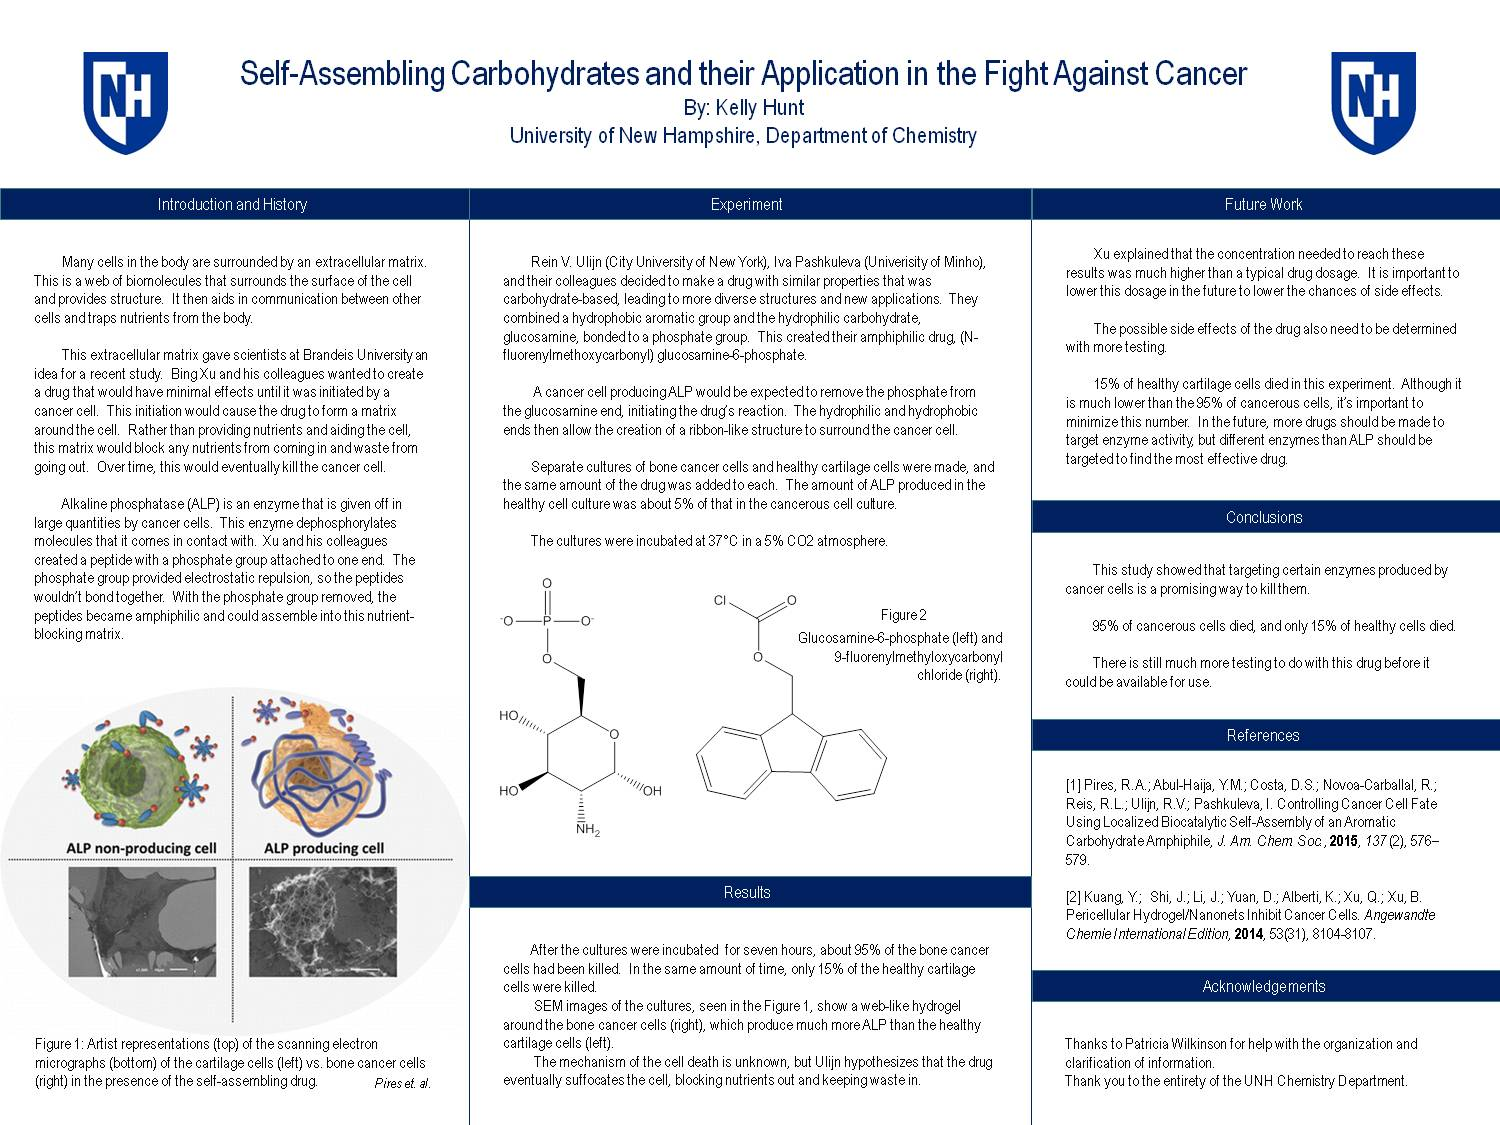 Self-Assembling Carbohydrates And Their Application In The Fight Against Cancer by kmy2576